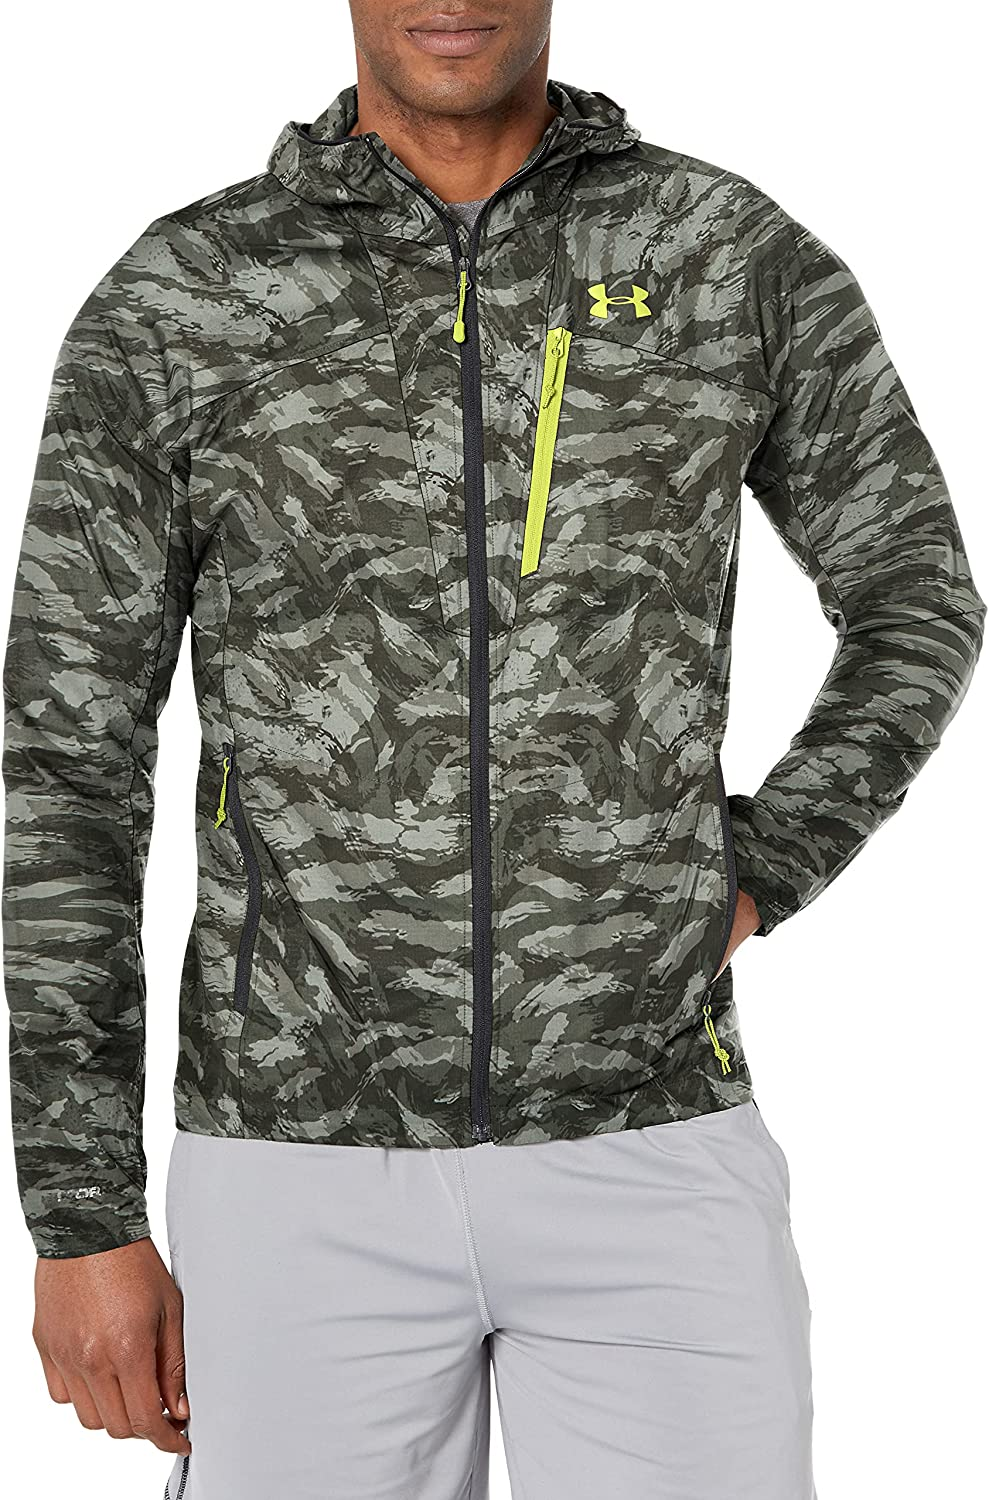 Under Armour mens Mission Jacket